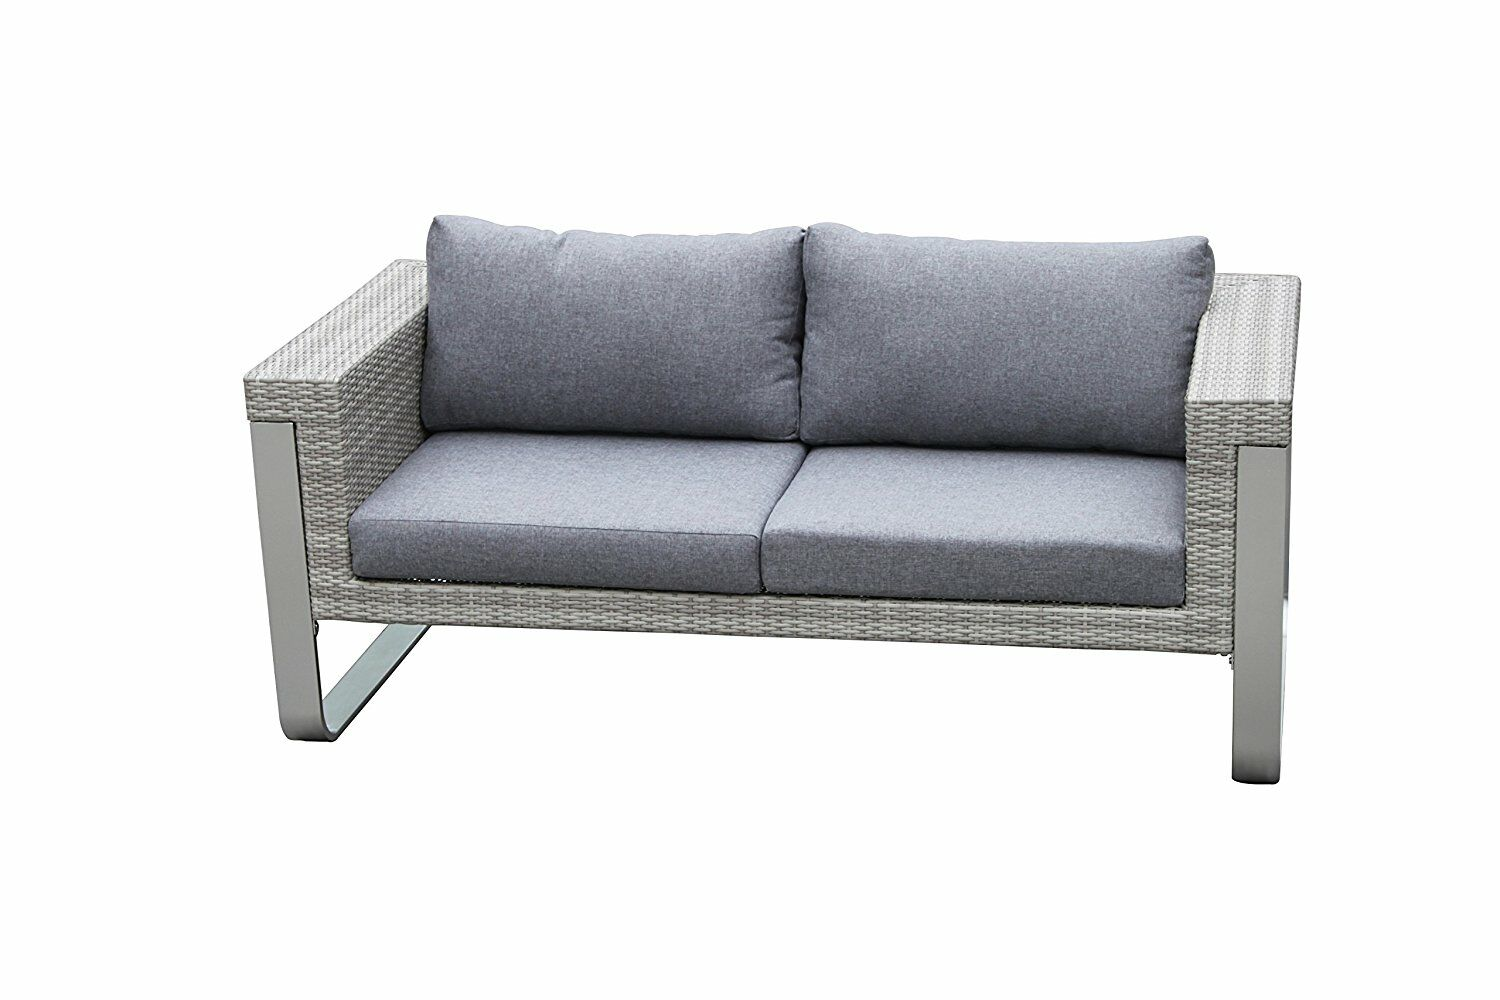 Regalado Modern Contemporary Outdoor Loveseat with Cushions